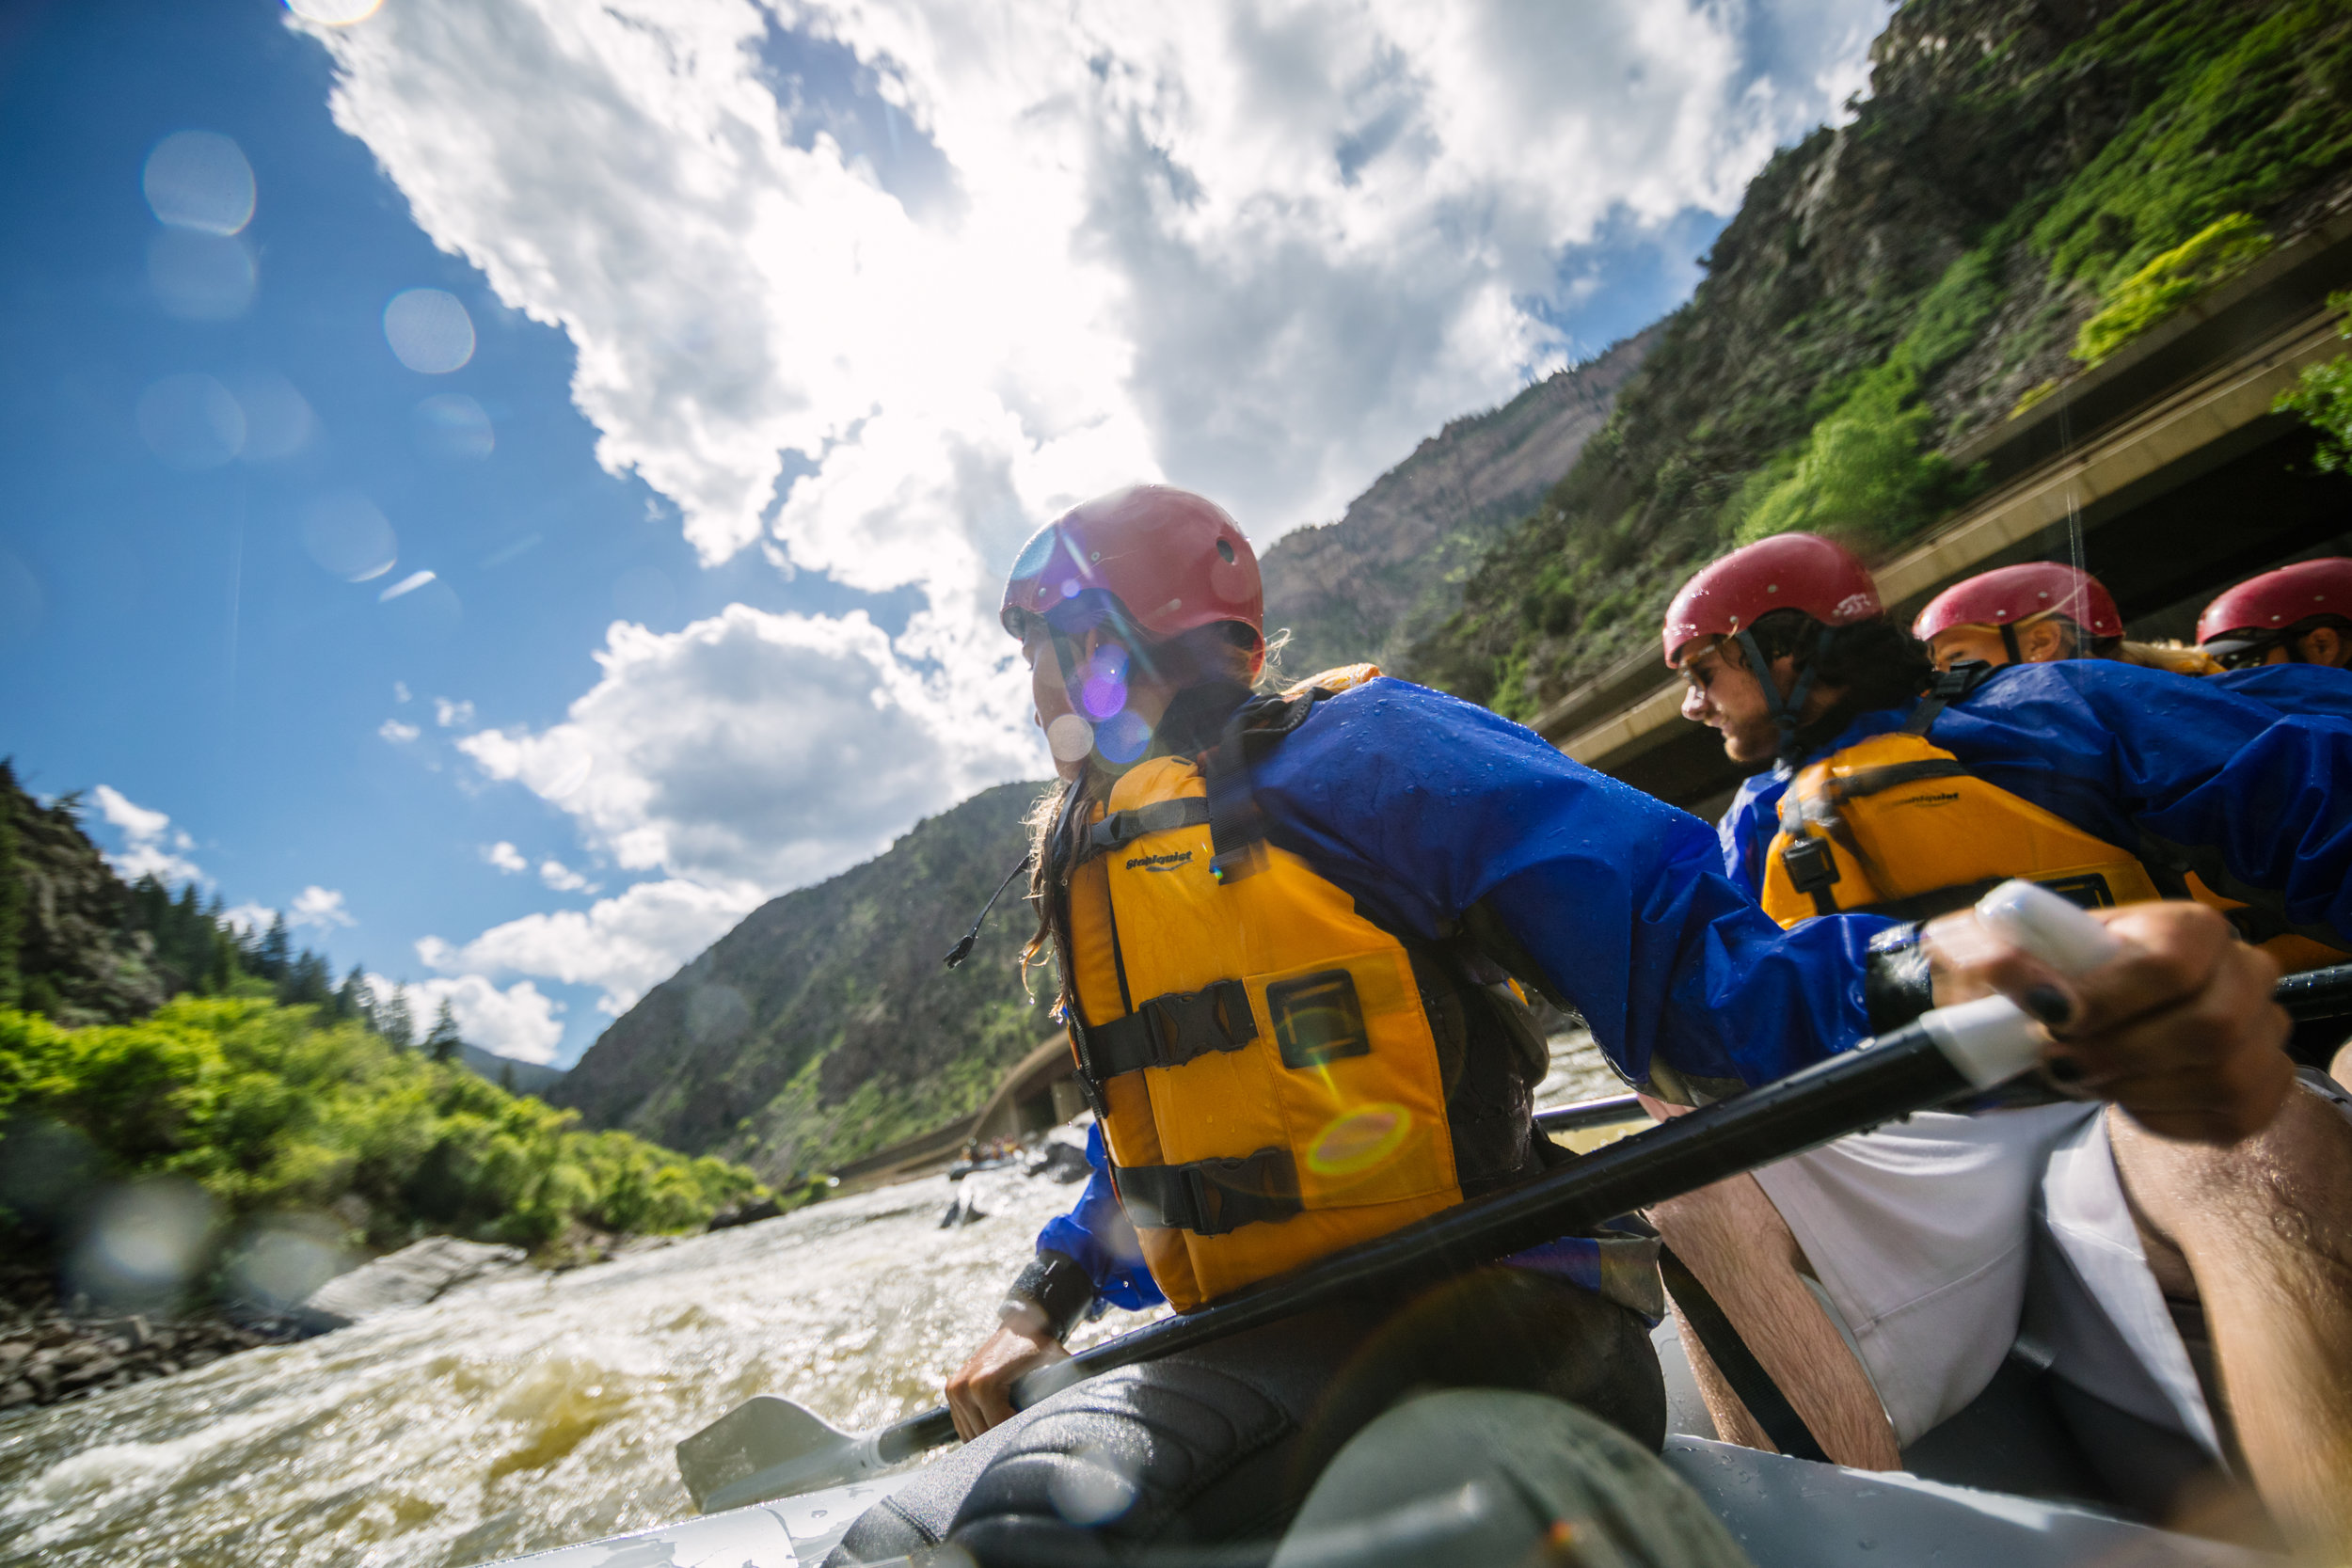 The crowd pleaser. - it has whitewater, inflatable kayaks, & Big Canyon scenery. Yep, it's special.